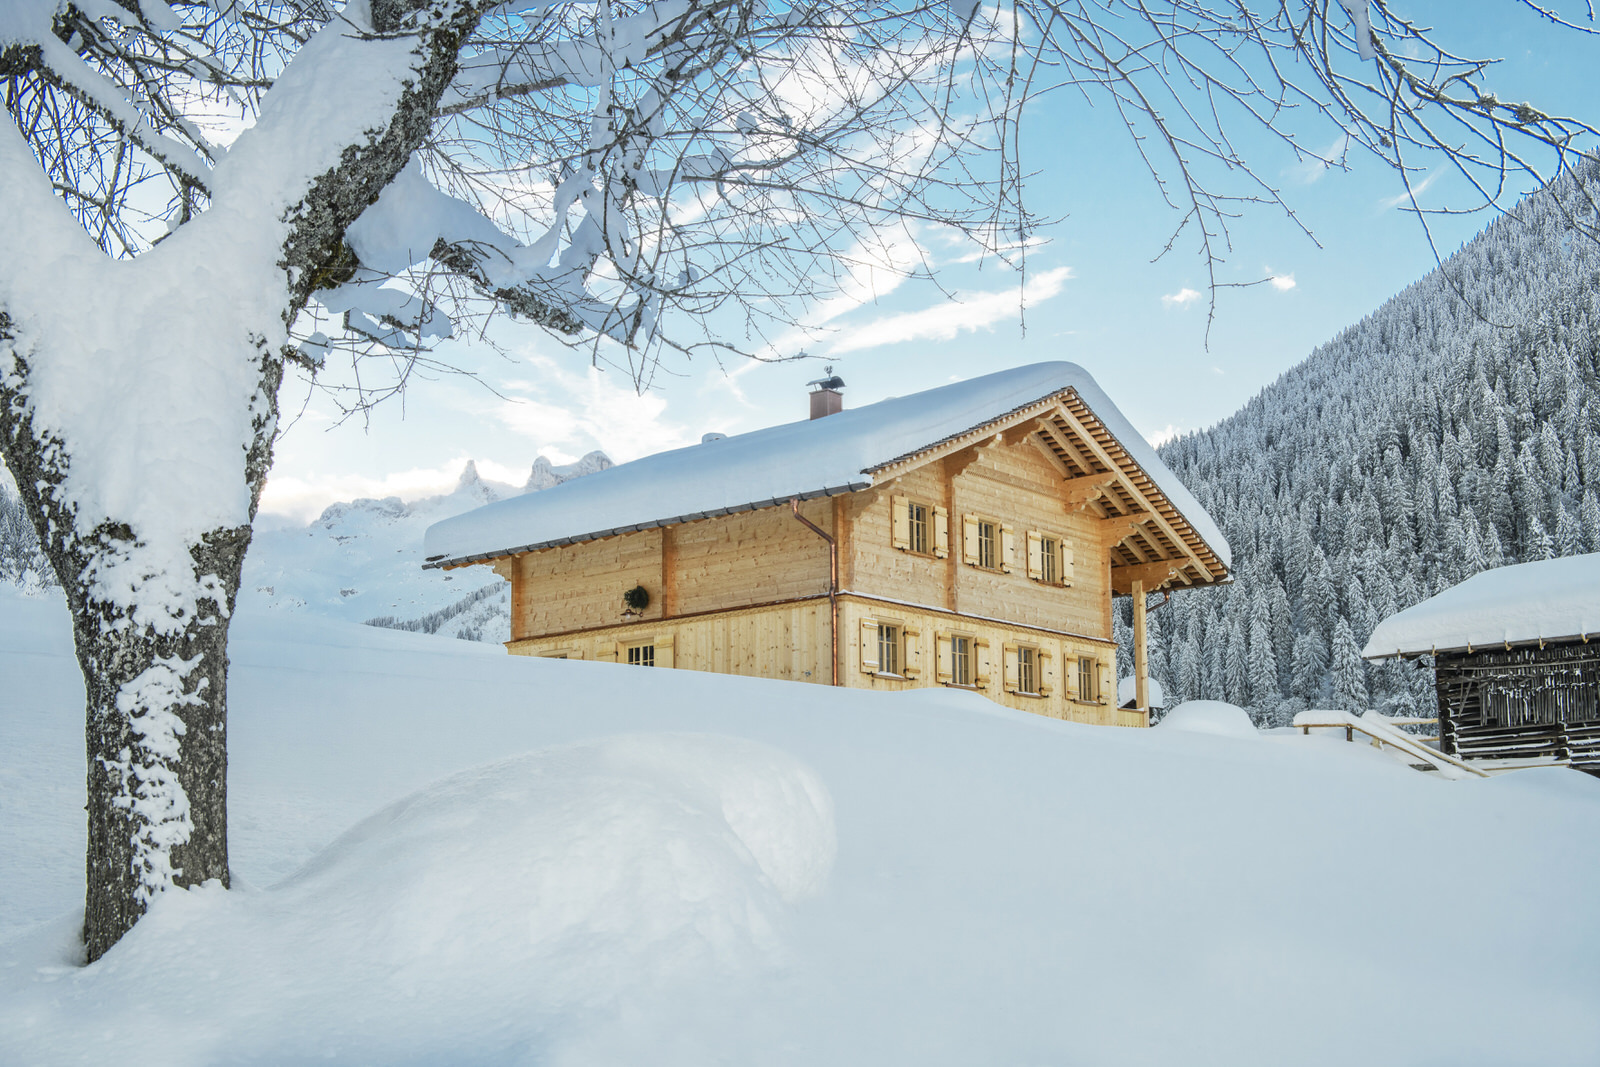 Exclusive mountain lodge Gauertal Montafon - winter view